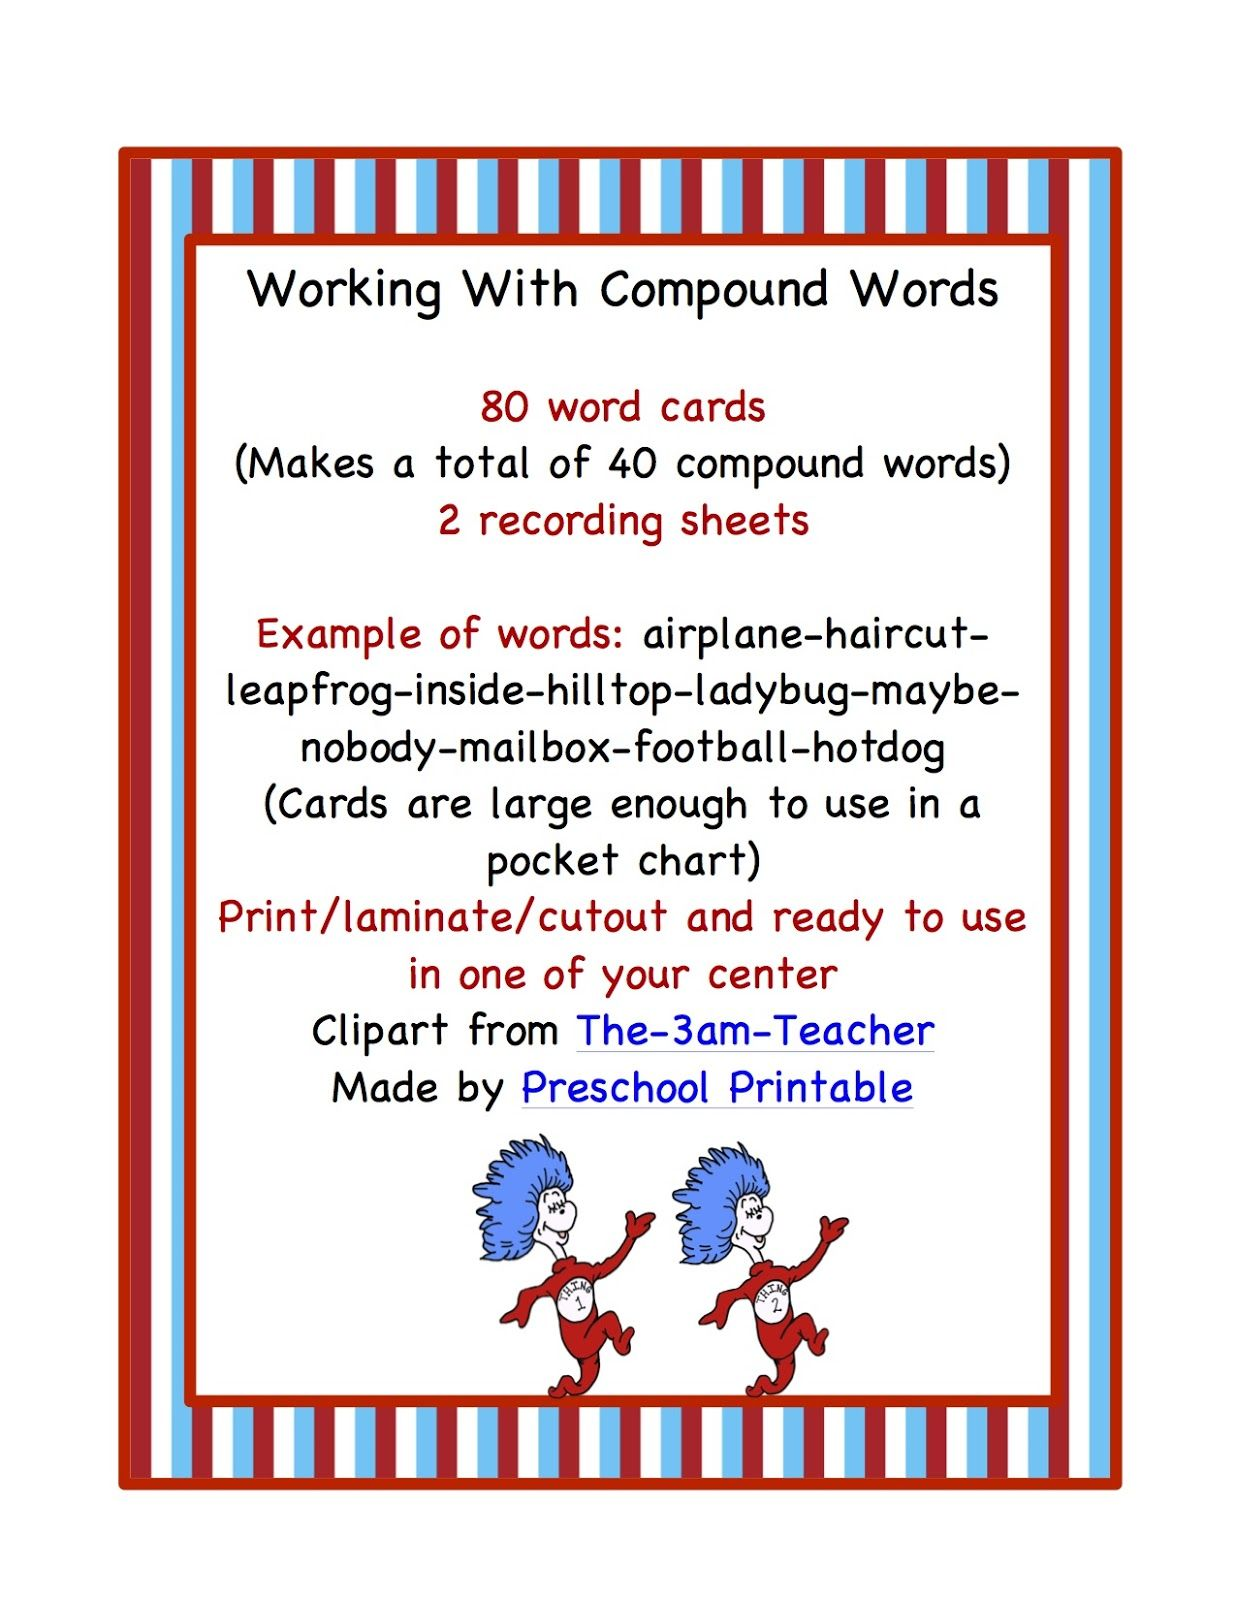 Working With Compound Words